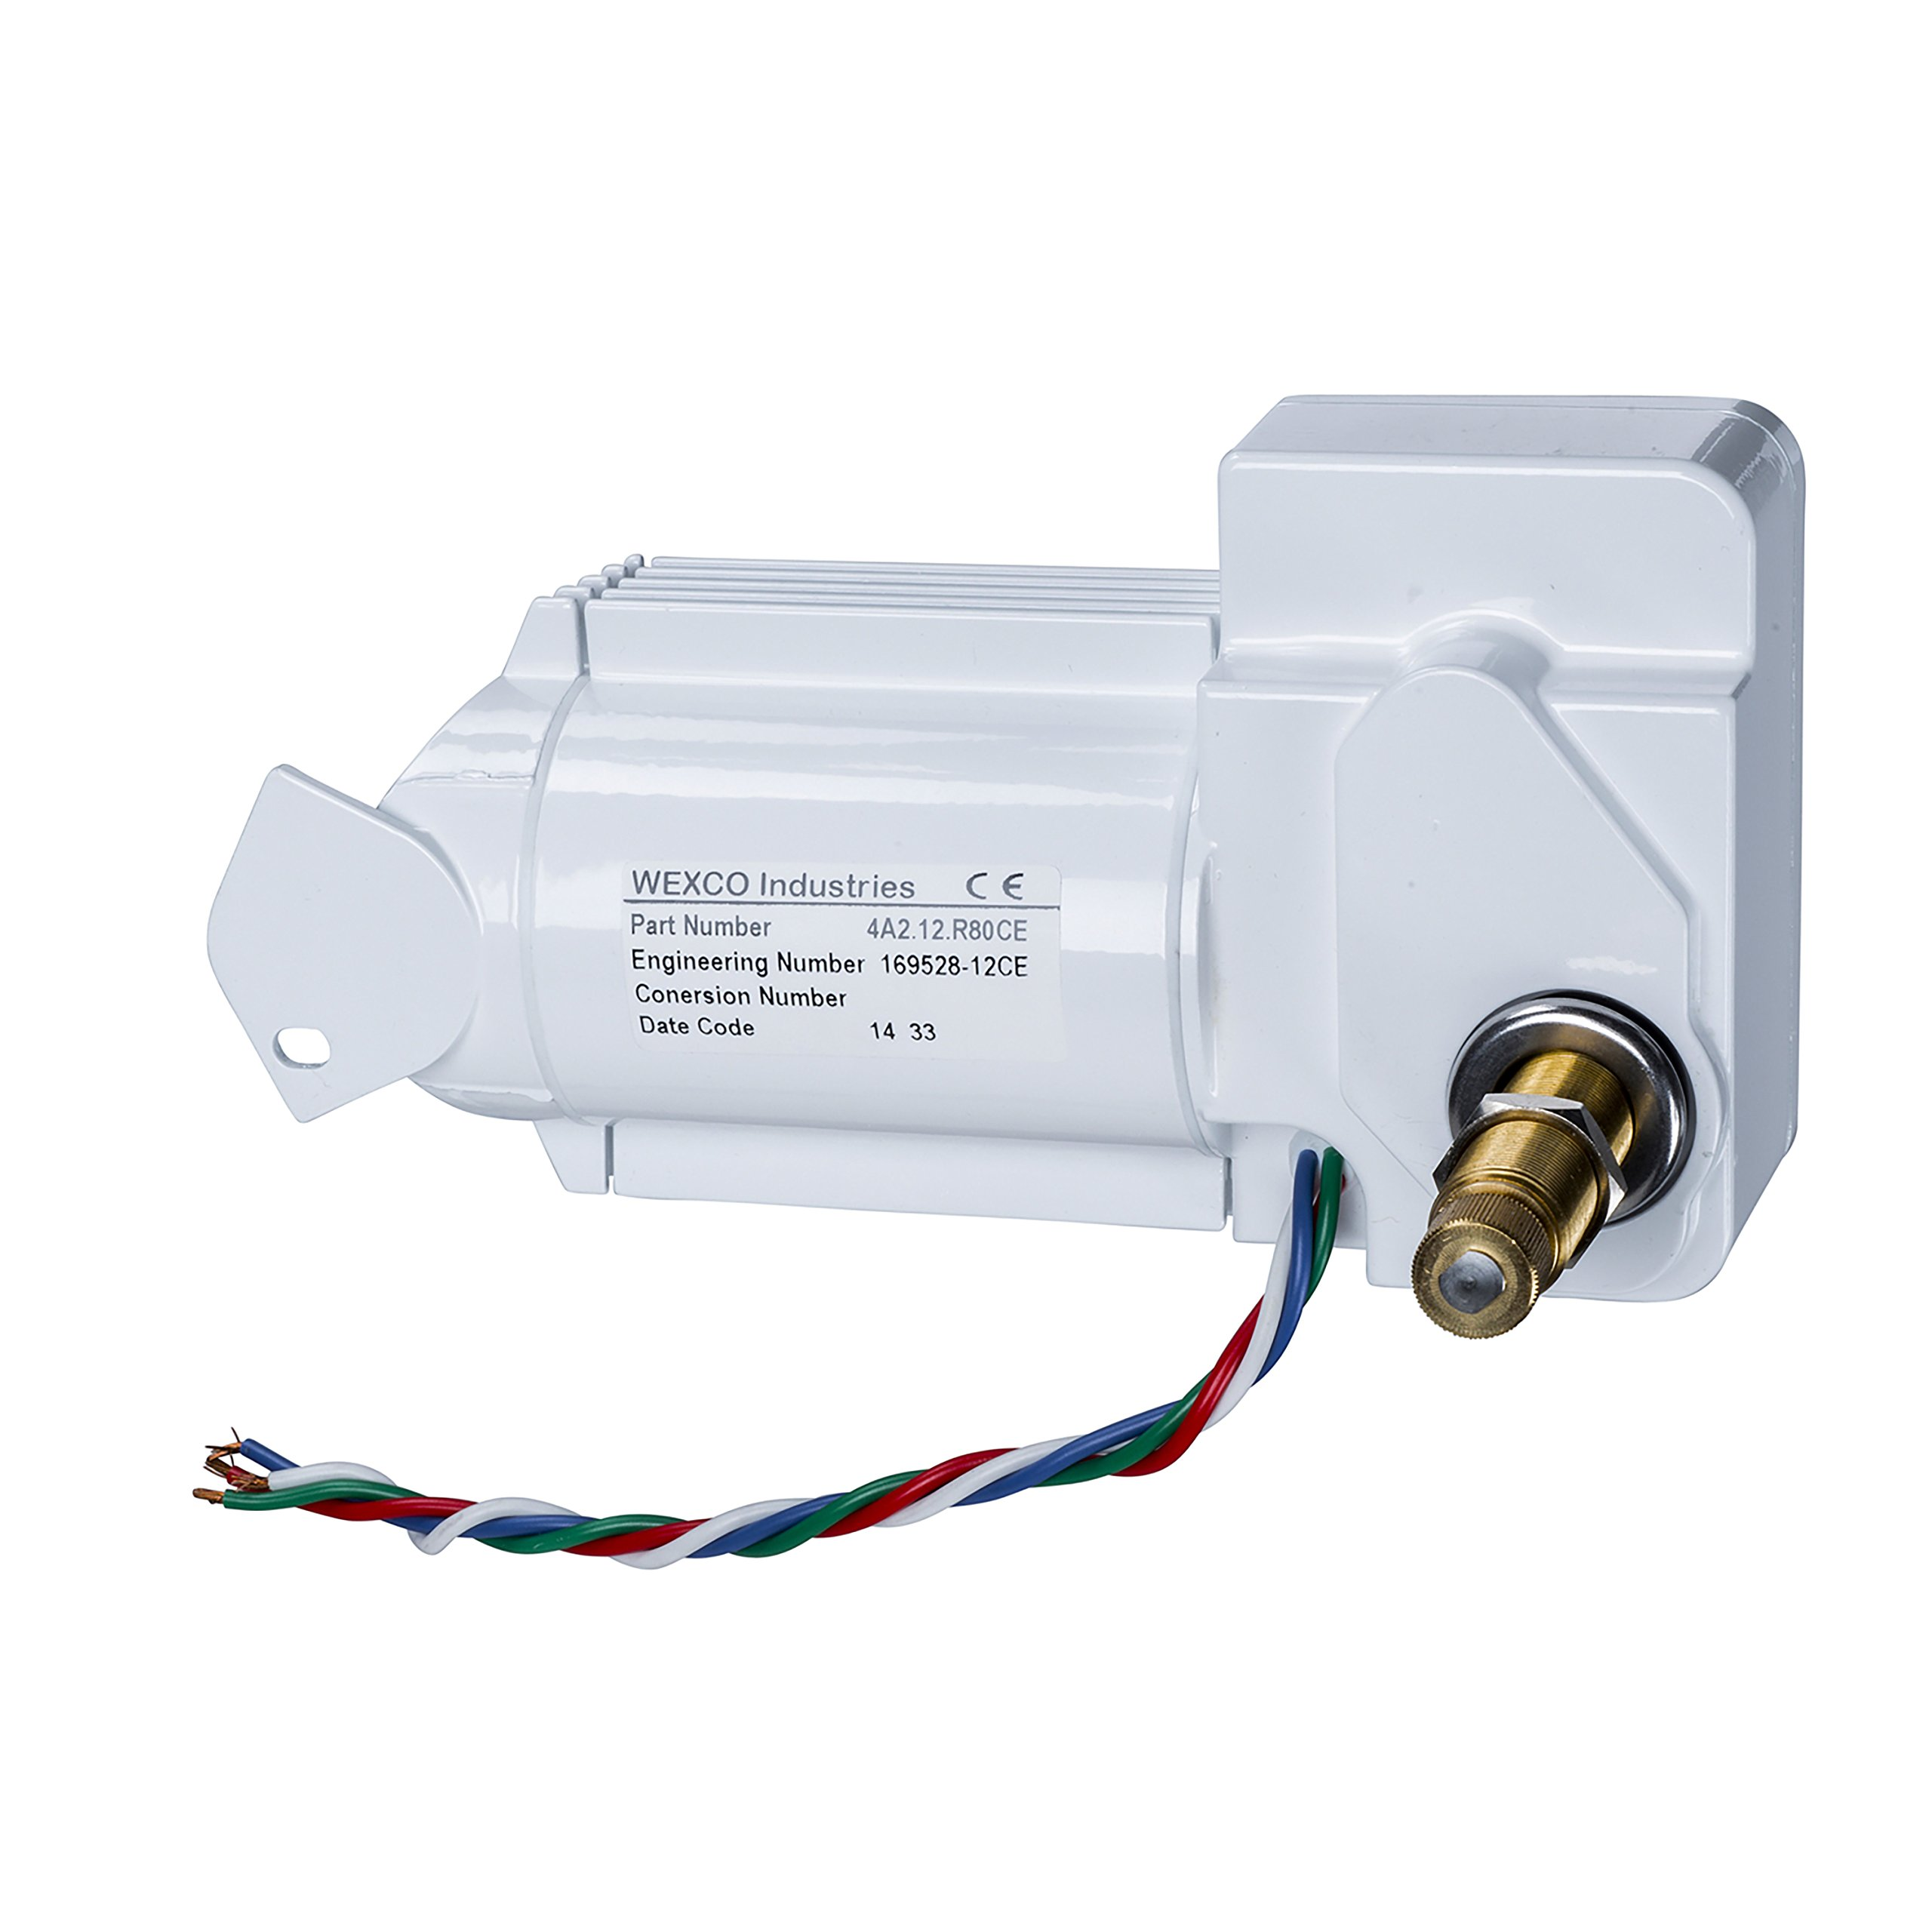 Wexco Wiper Motor, 4A2.12.R110DCE, Two and a half inch (2.5'') shaft, 12V, CE Certified by AutoTex